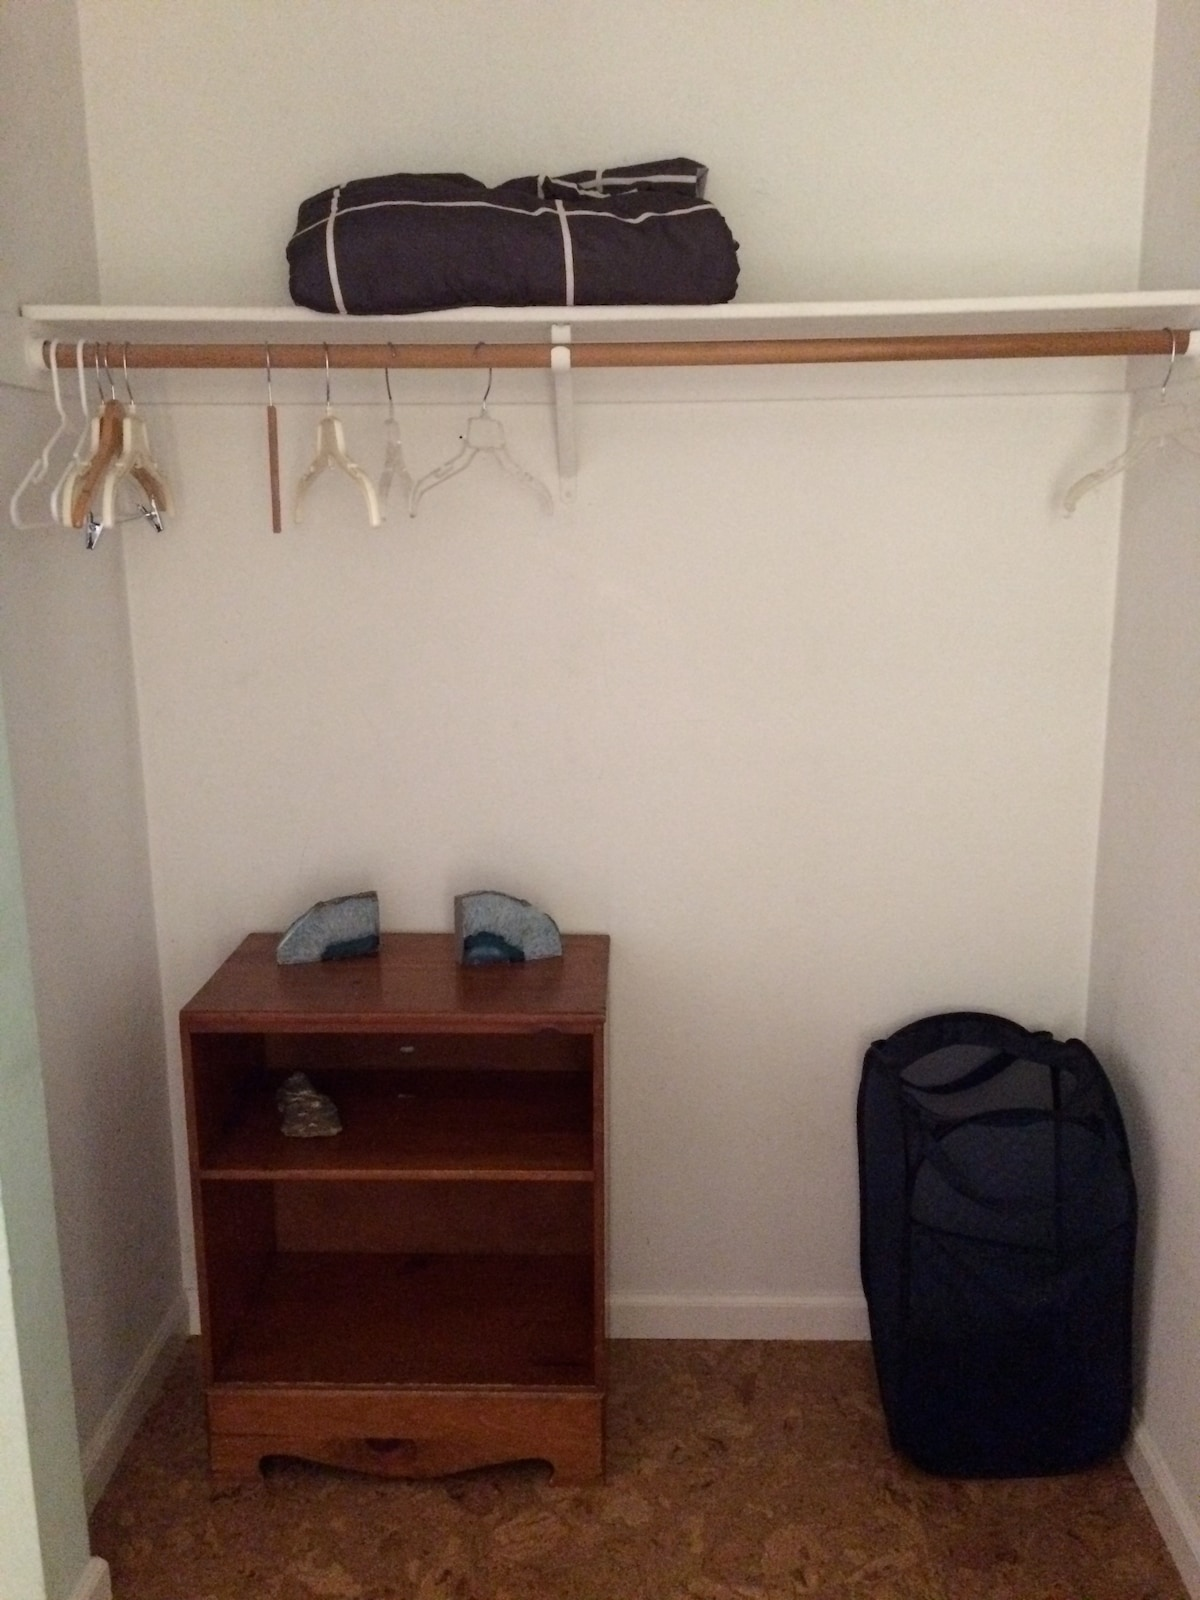 Where you can hang your clothes.